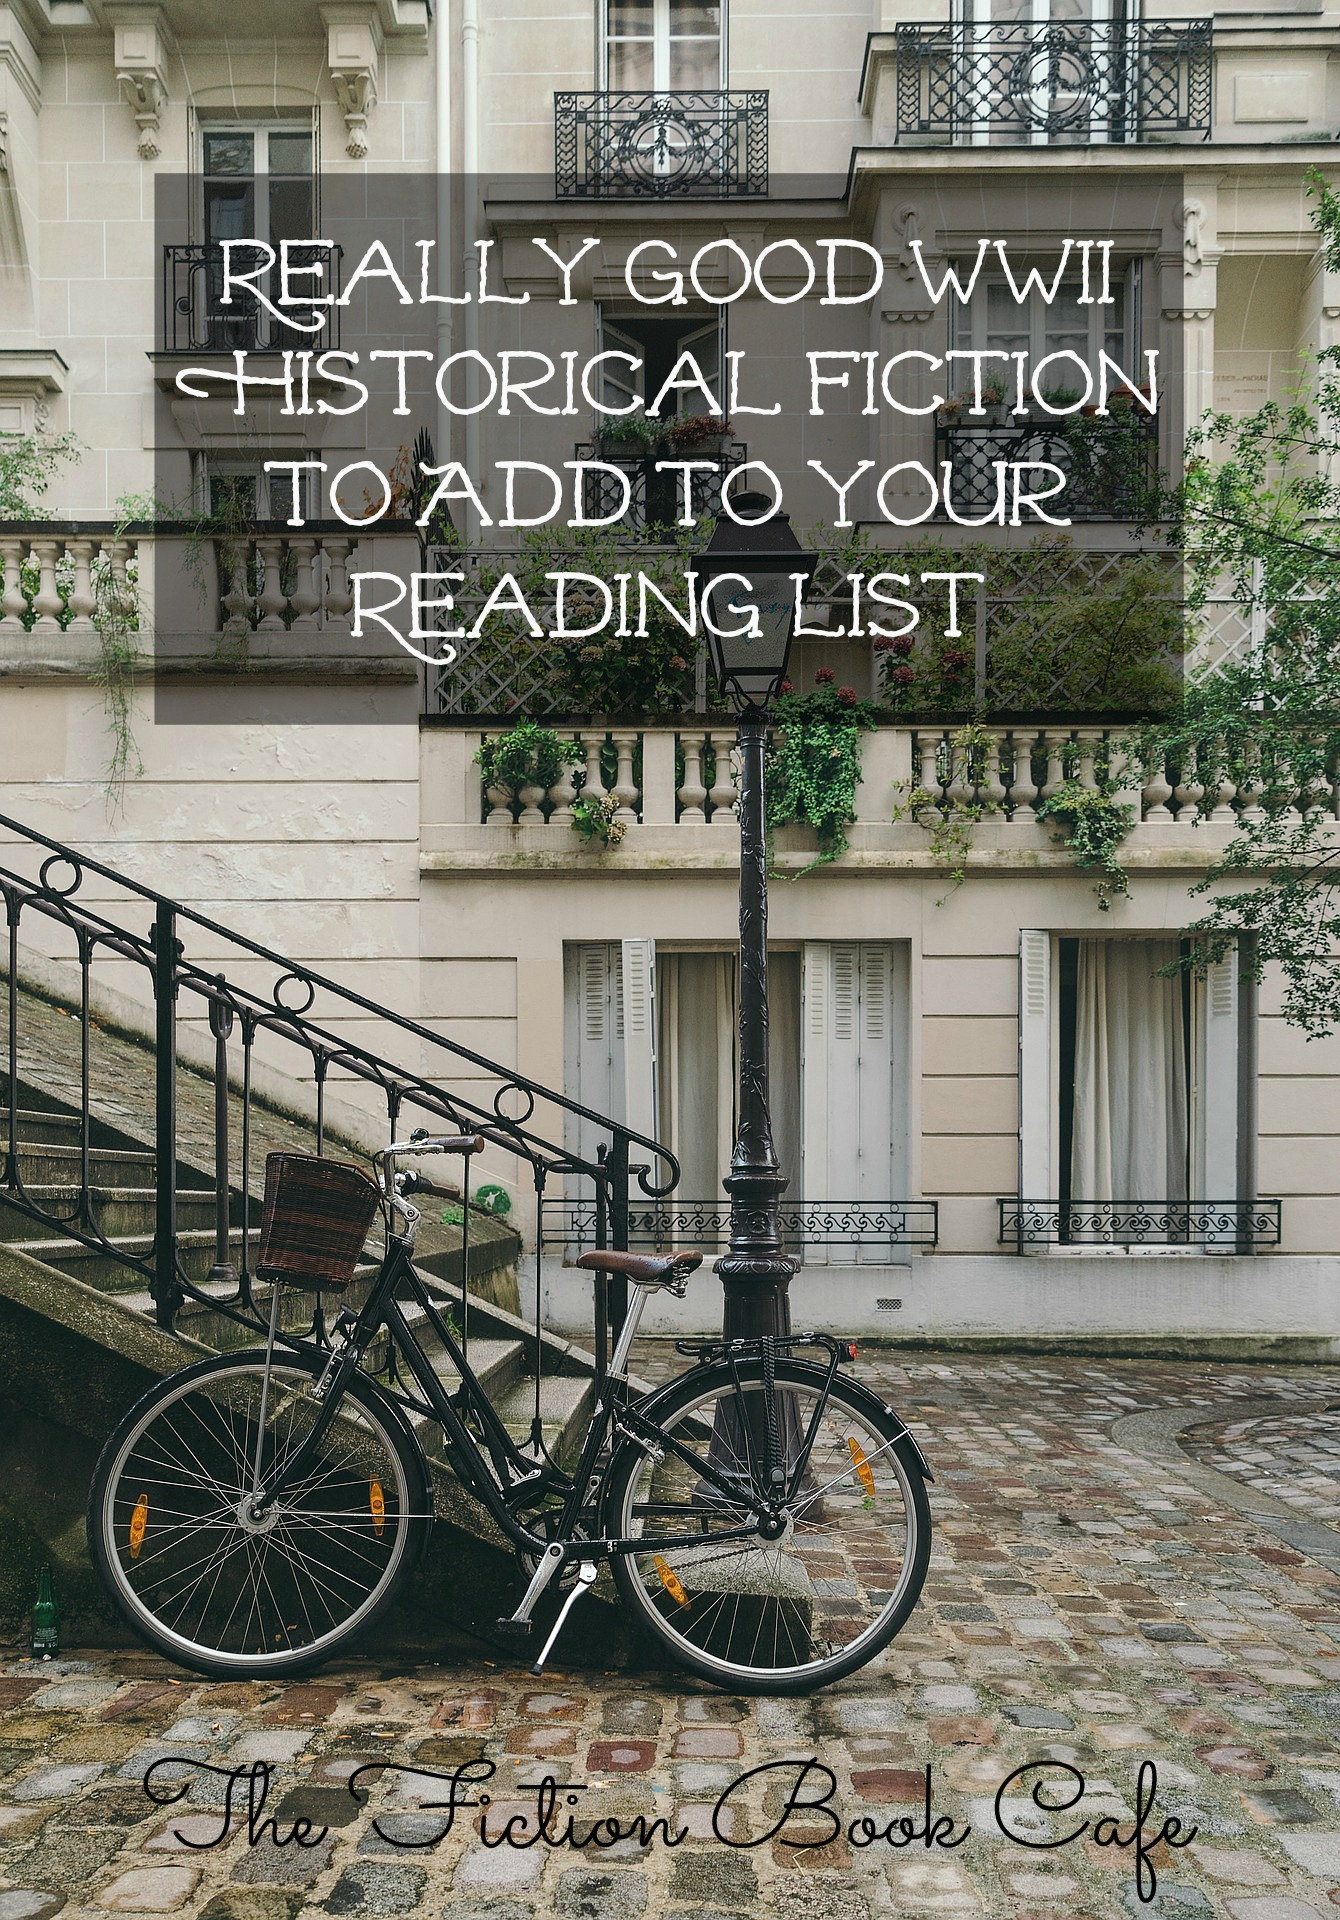 Really Good WWII Historical Fiction to Add to Your Reading List